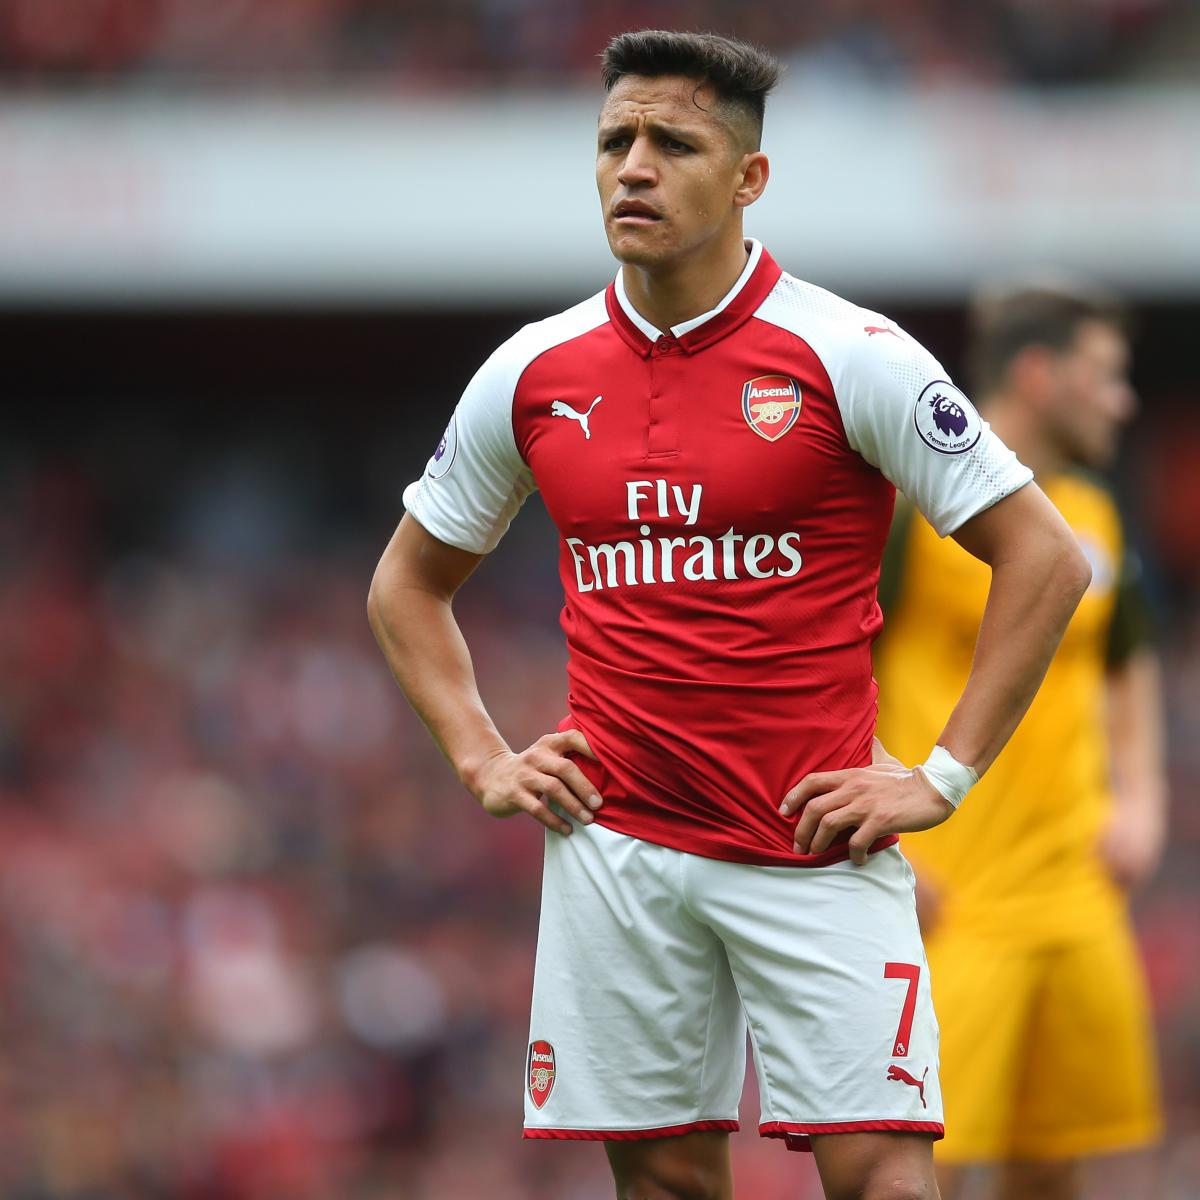 Reports Arsenal Were Ready To Sign Lucas: Arsenal Transfer News: Latest Rumours On Alexis Sanchez